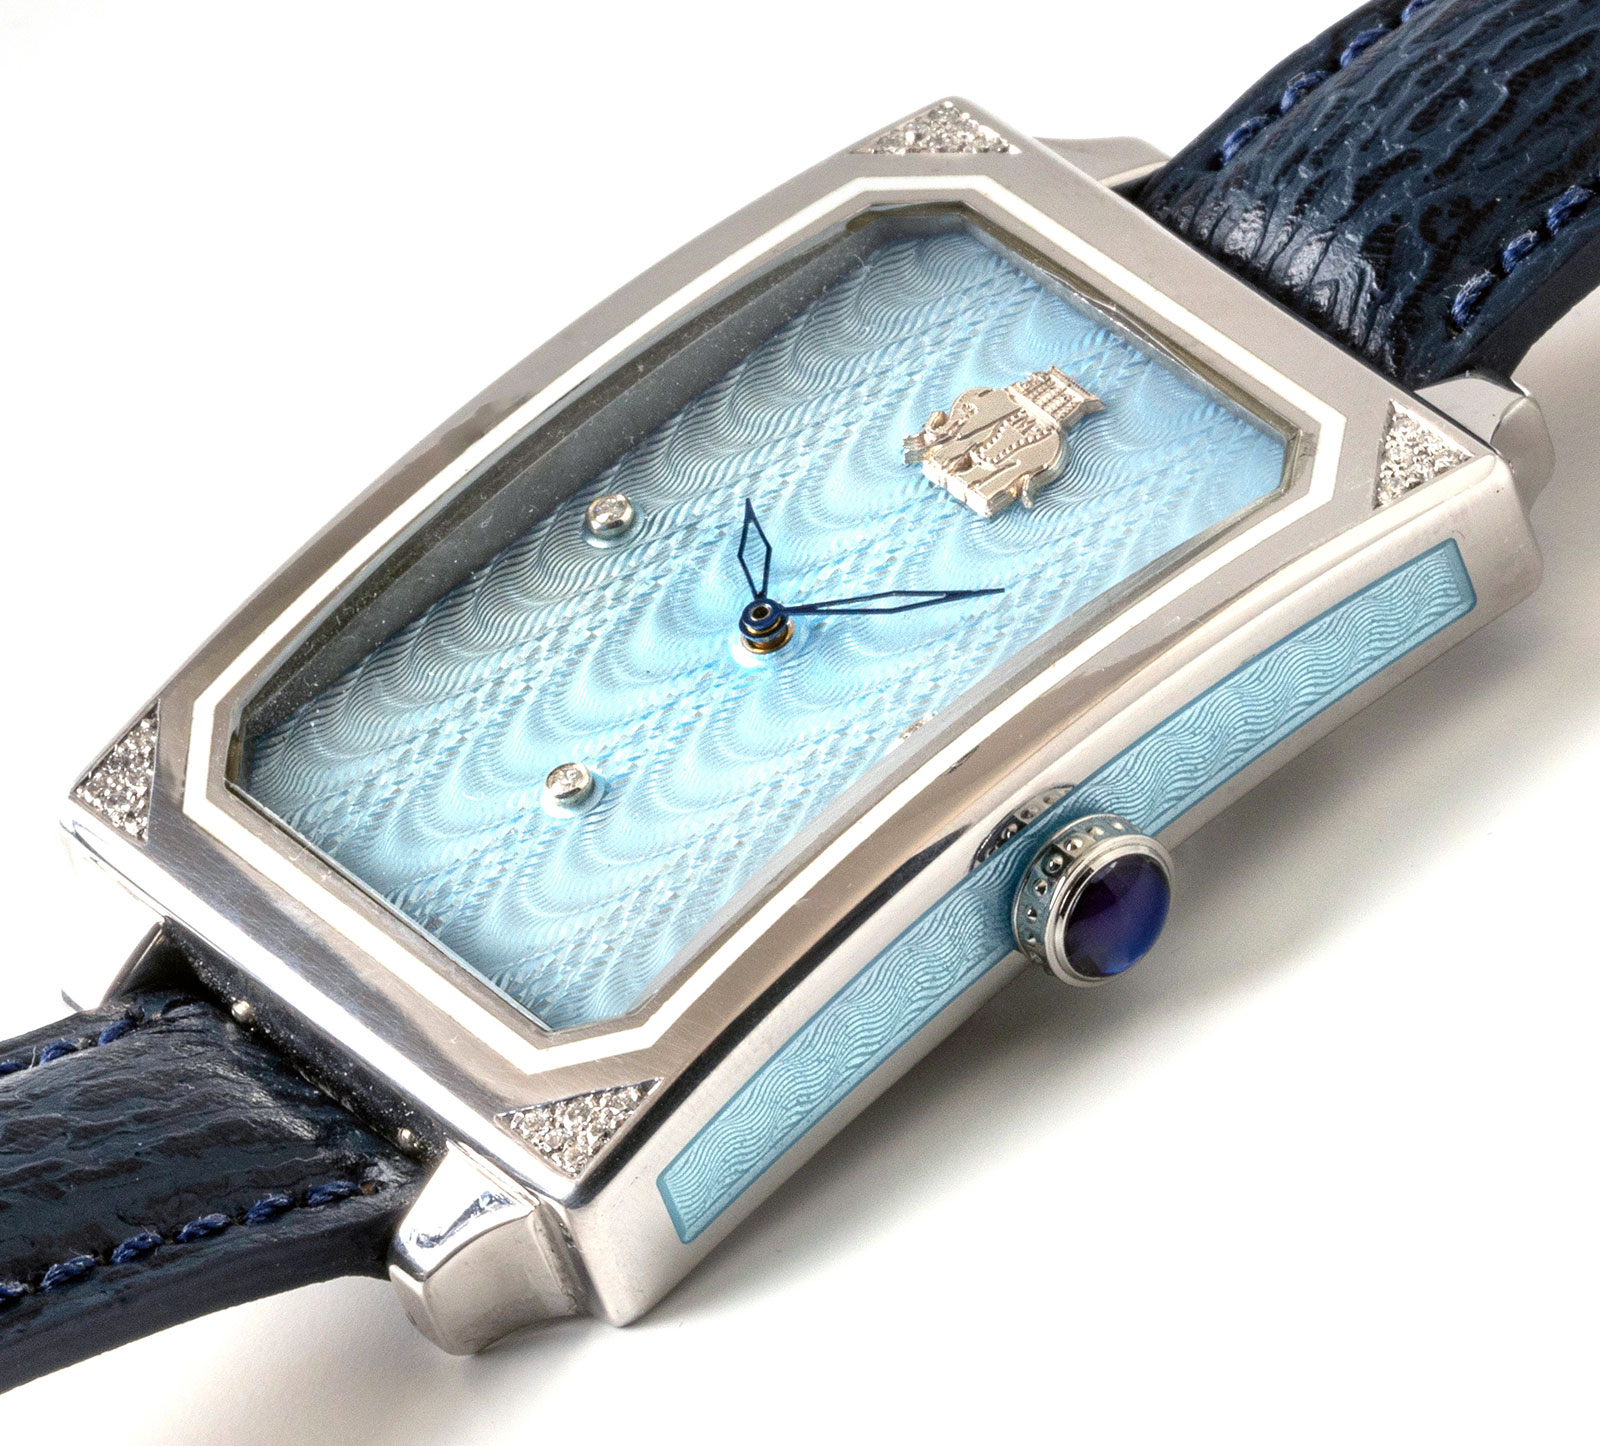 michel perchin watch enamel 7